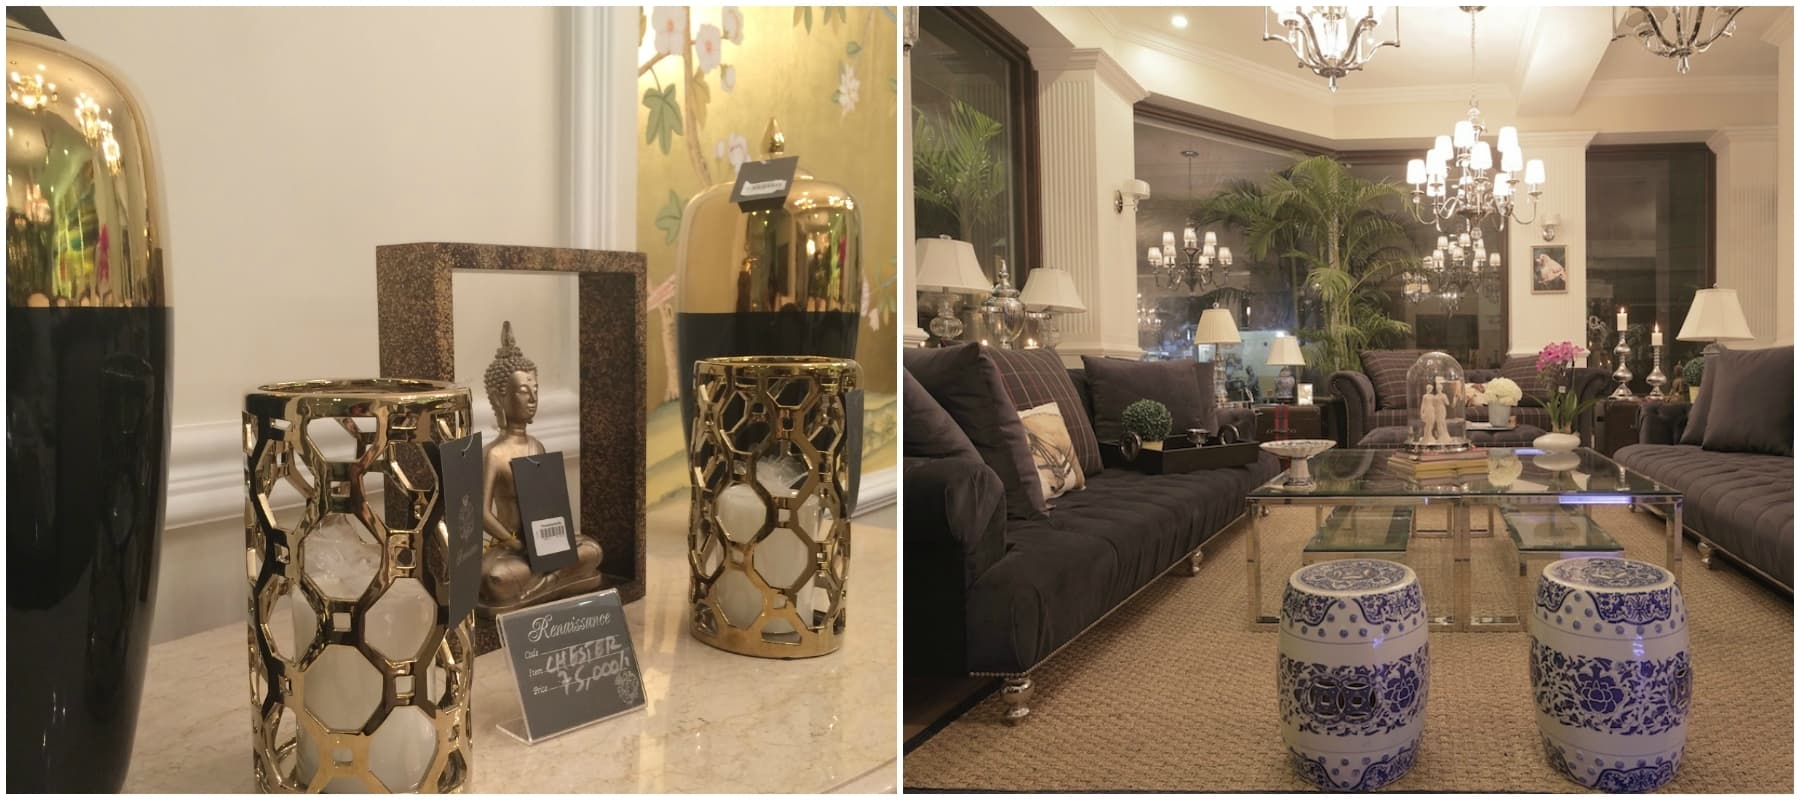 top picks for home decor these 10 stores get interiors right pakistan dawn com. Black Bedroom Furniture Sets. Home Design Ideas